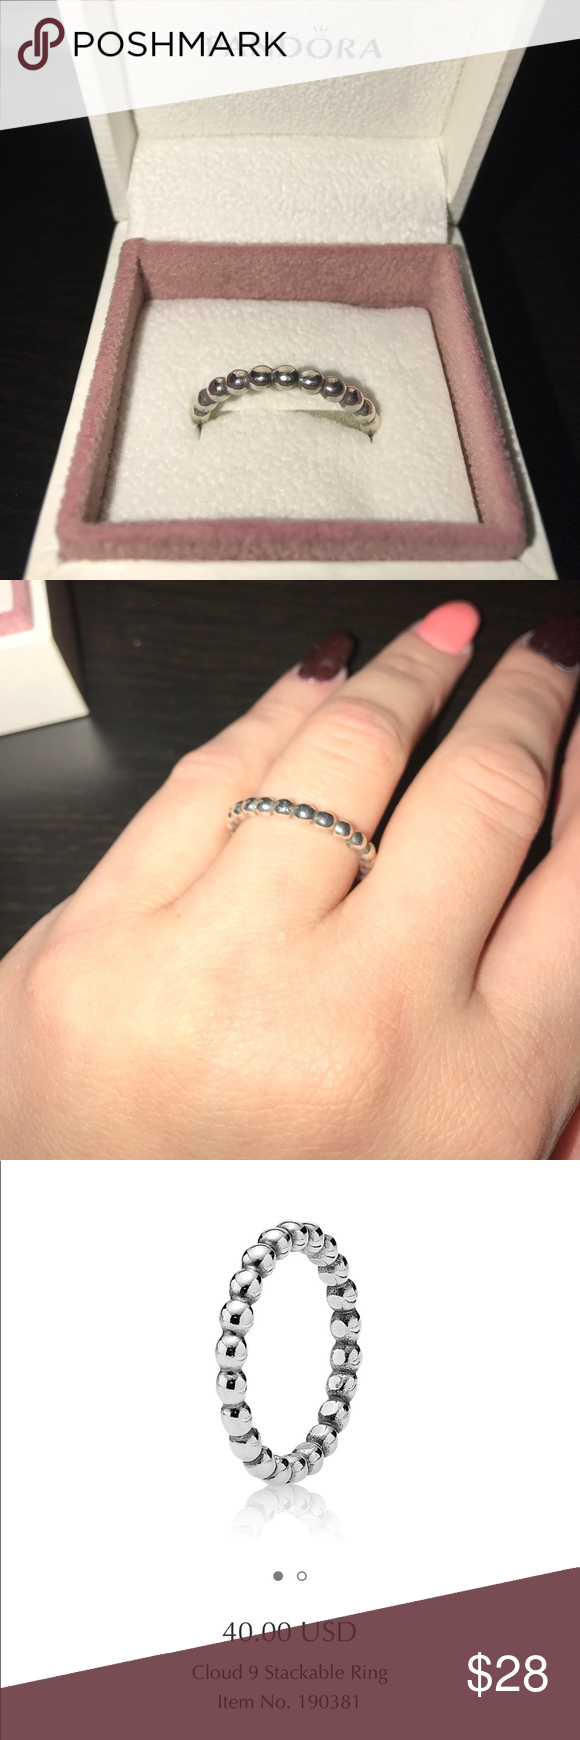 💍Like New Pandora Cloud 9 ring in size 8.5 💍💍💍Pandora Cloud 9 sterling silver ring purchased from Pandora store in late 2016. Cleaned regularly at the Pandora Store. Ring is a size 58, which is equivalent to an 8.5. **offers will be accepted through the offer function via Posh! ❌PP ❌trades Pandora Jewelry Rings